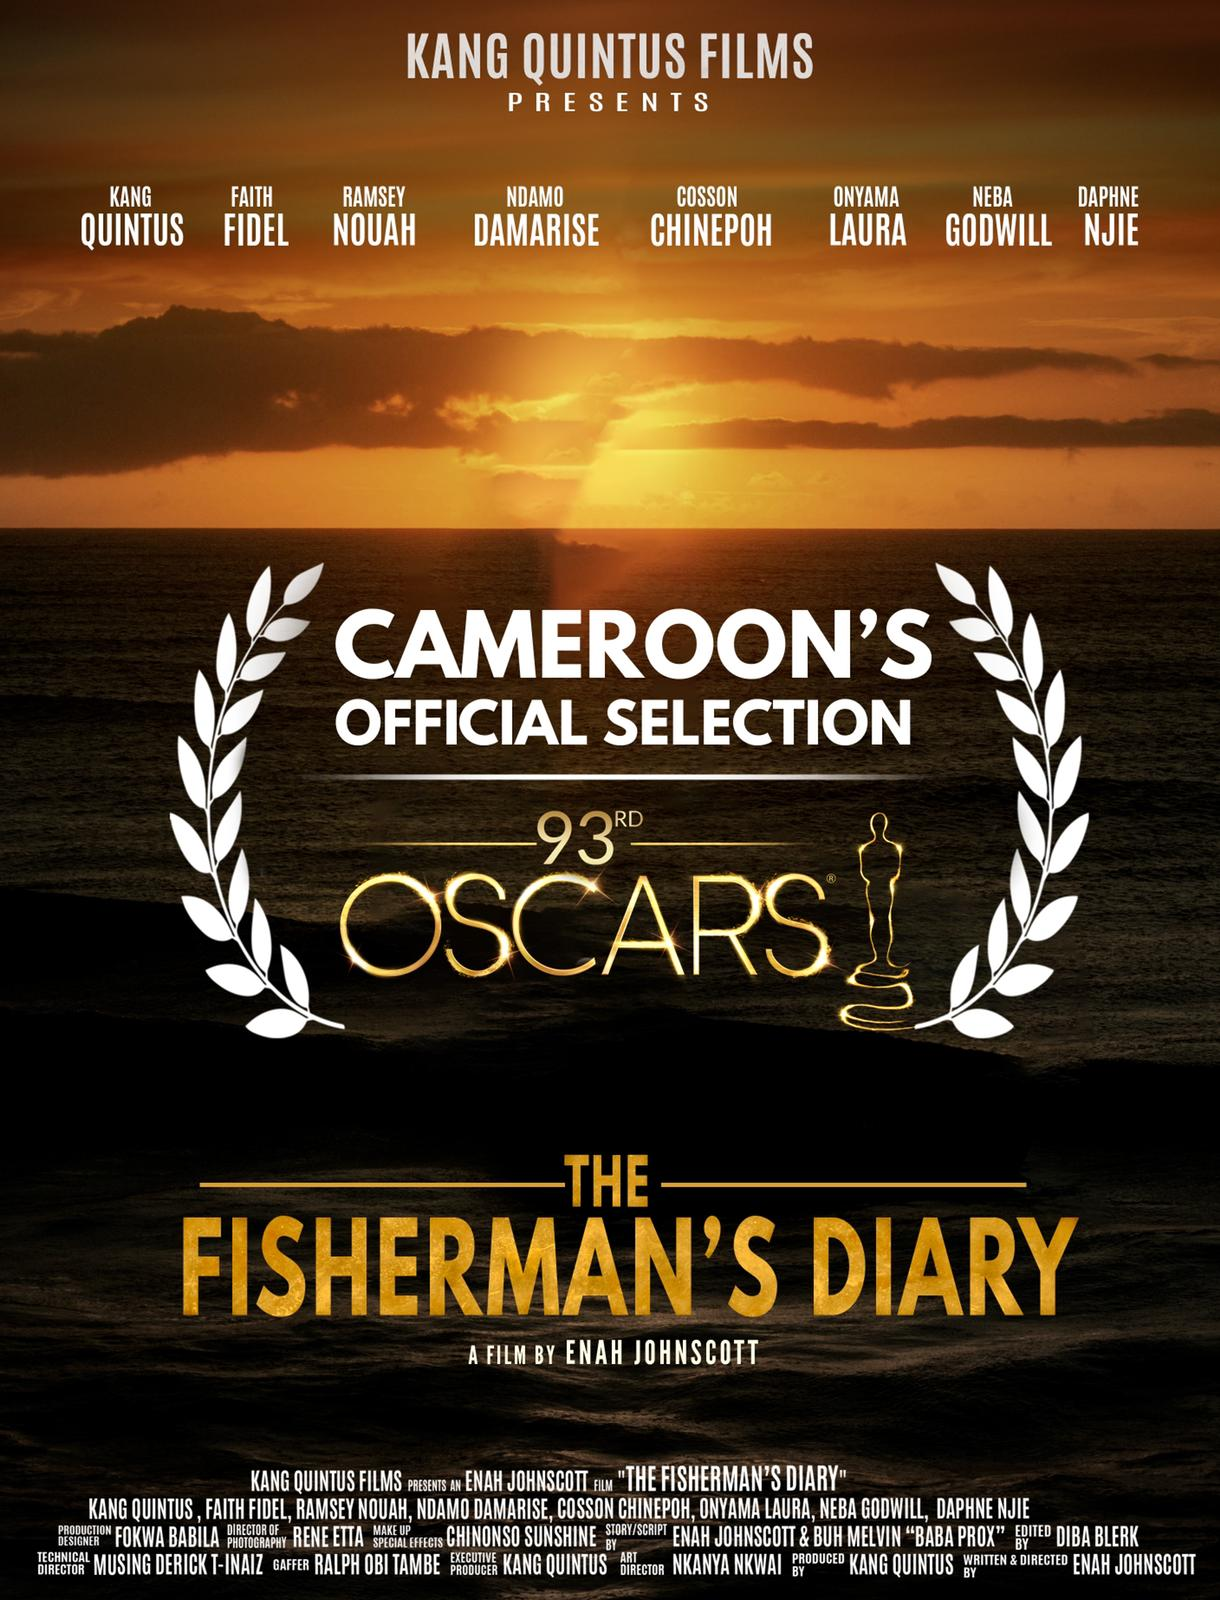 Cameroonian Movie The Fisherman's Diary picks up from where it left in 2020